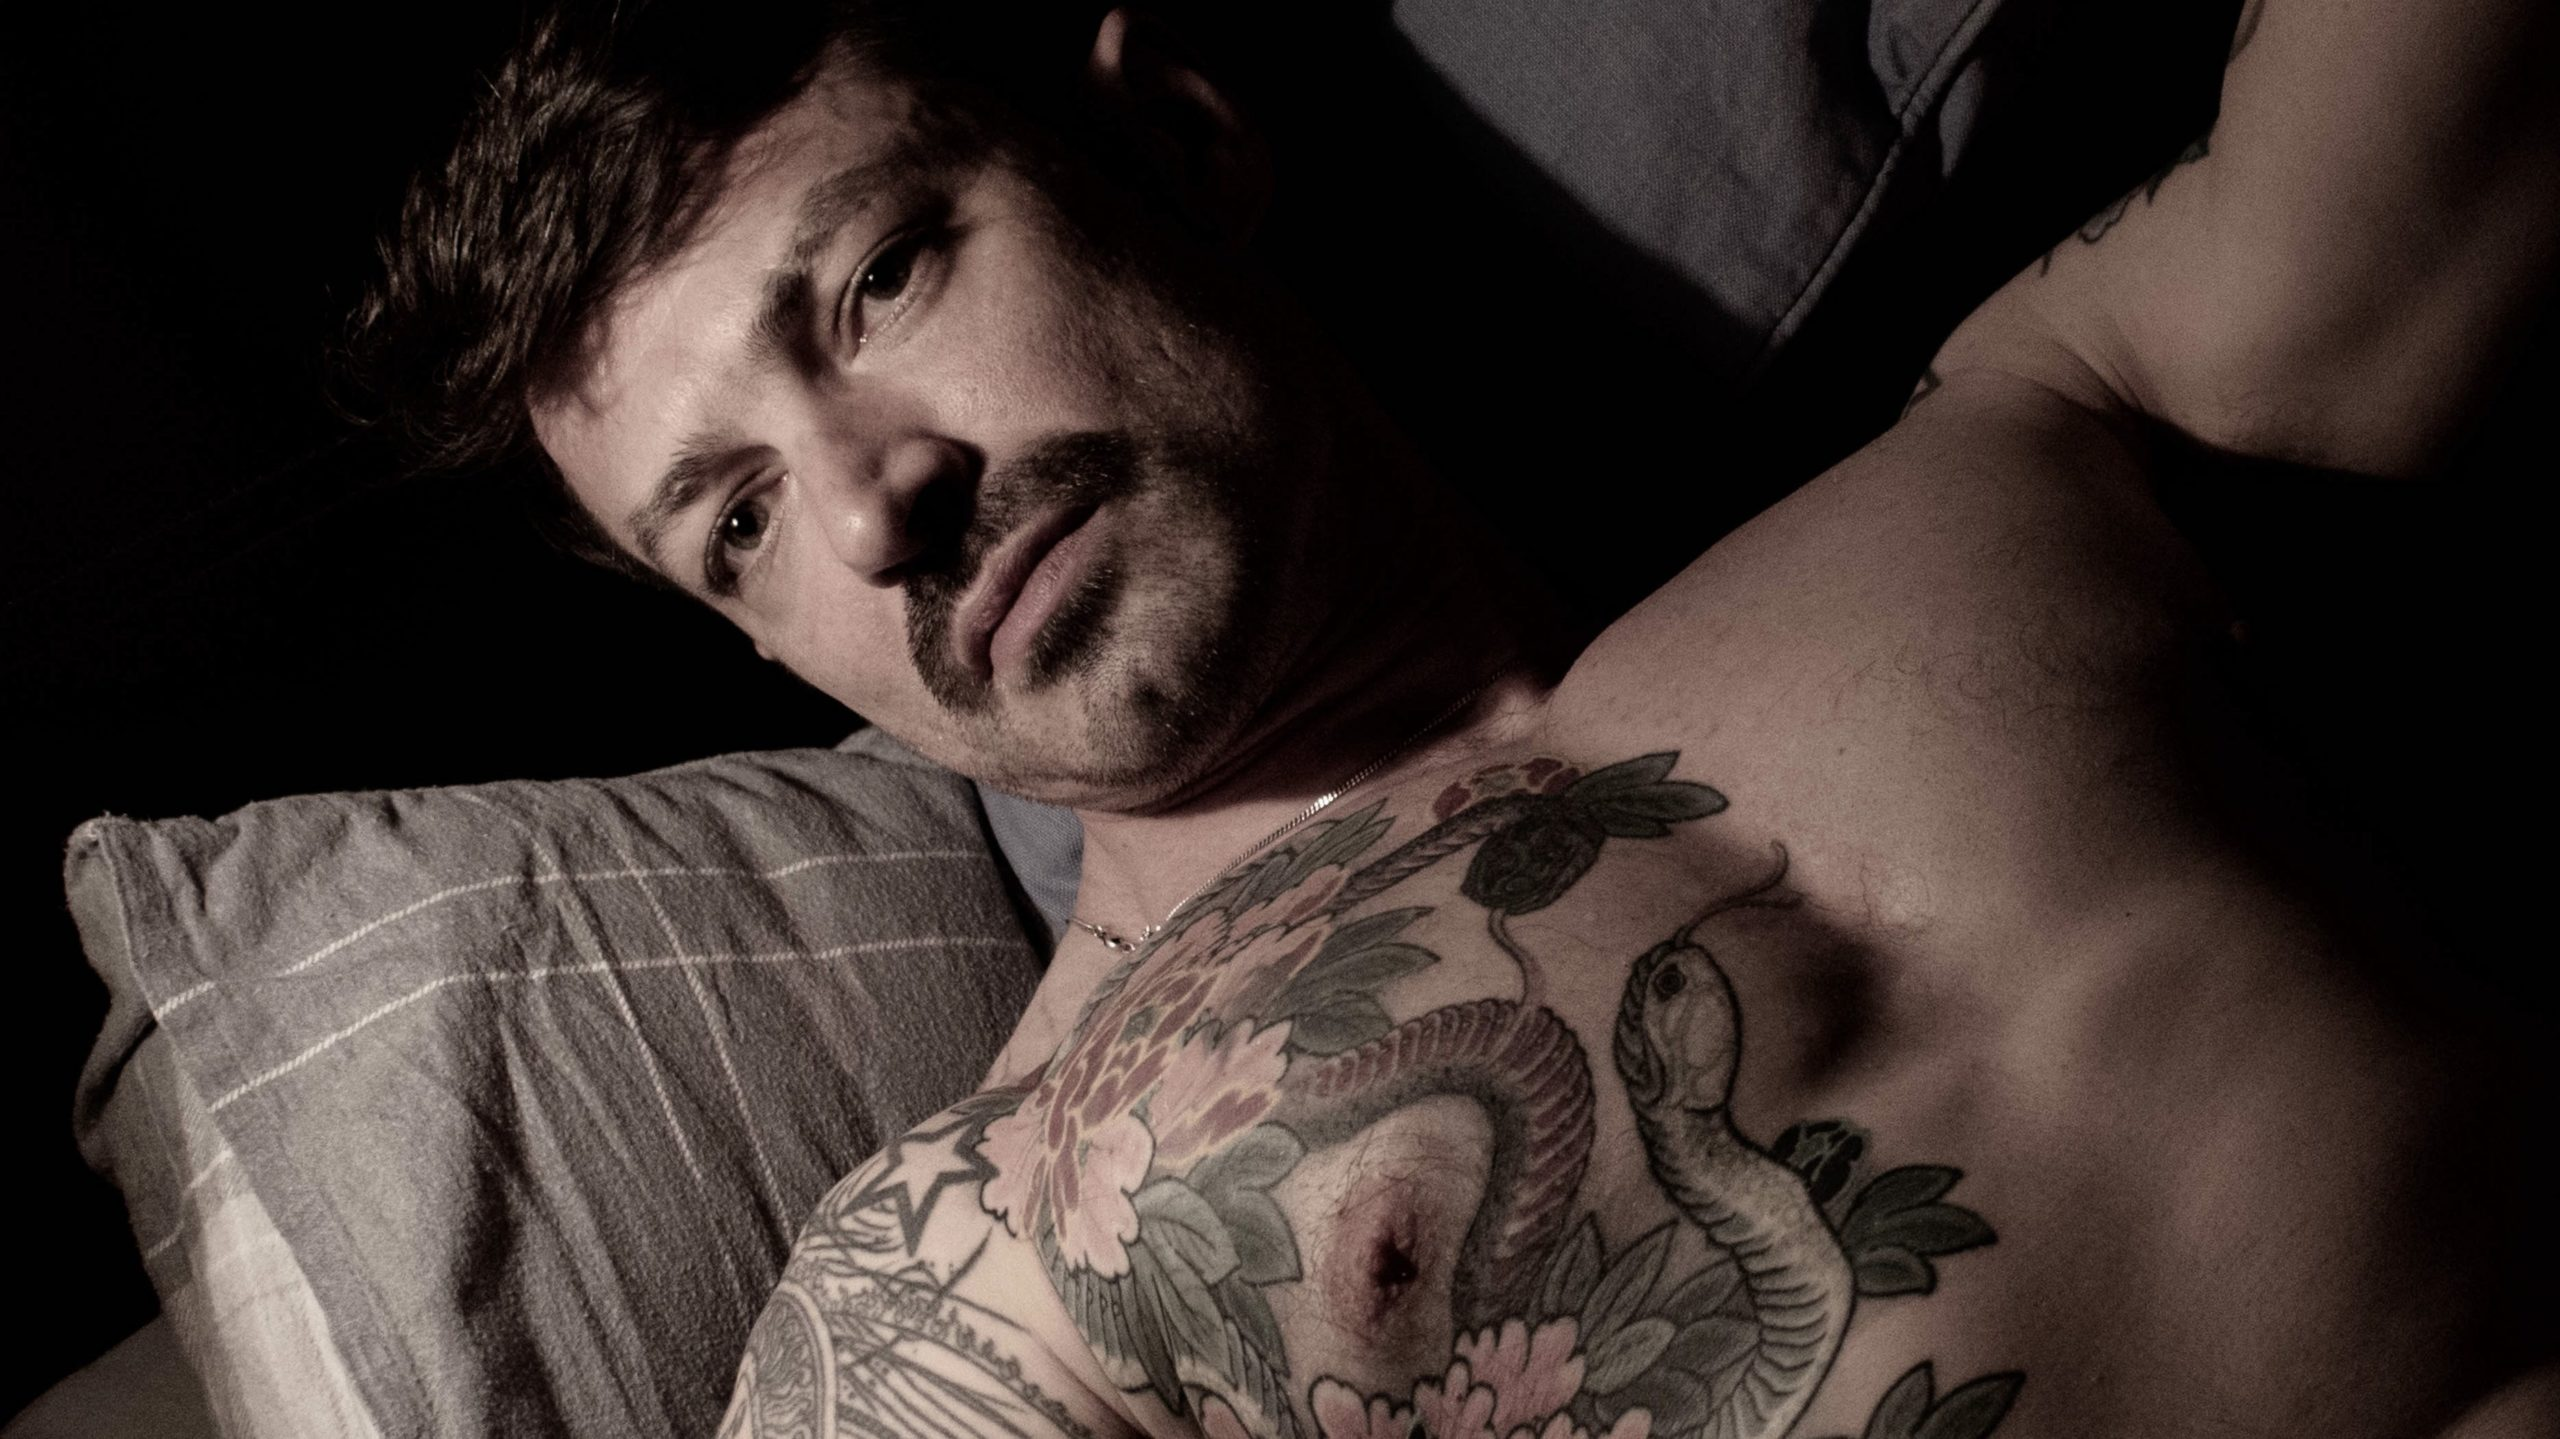 online male sexworker poses in bed showing bearded face and tattoos